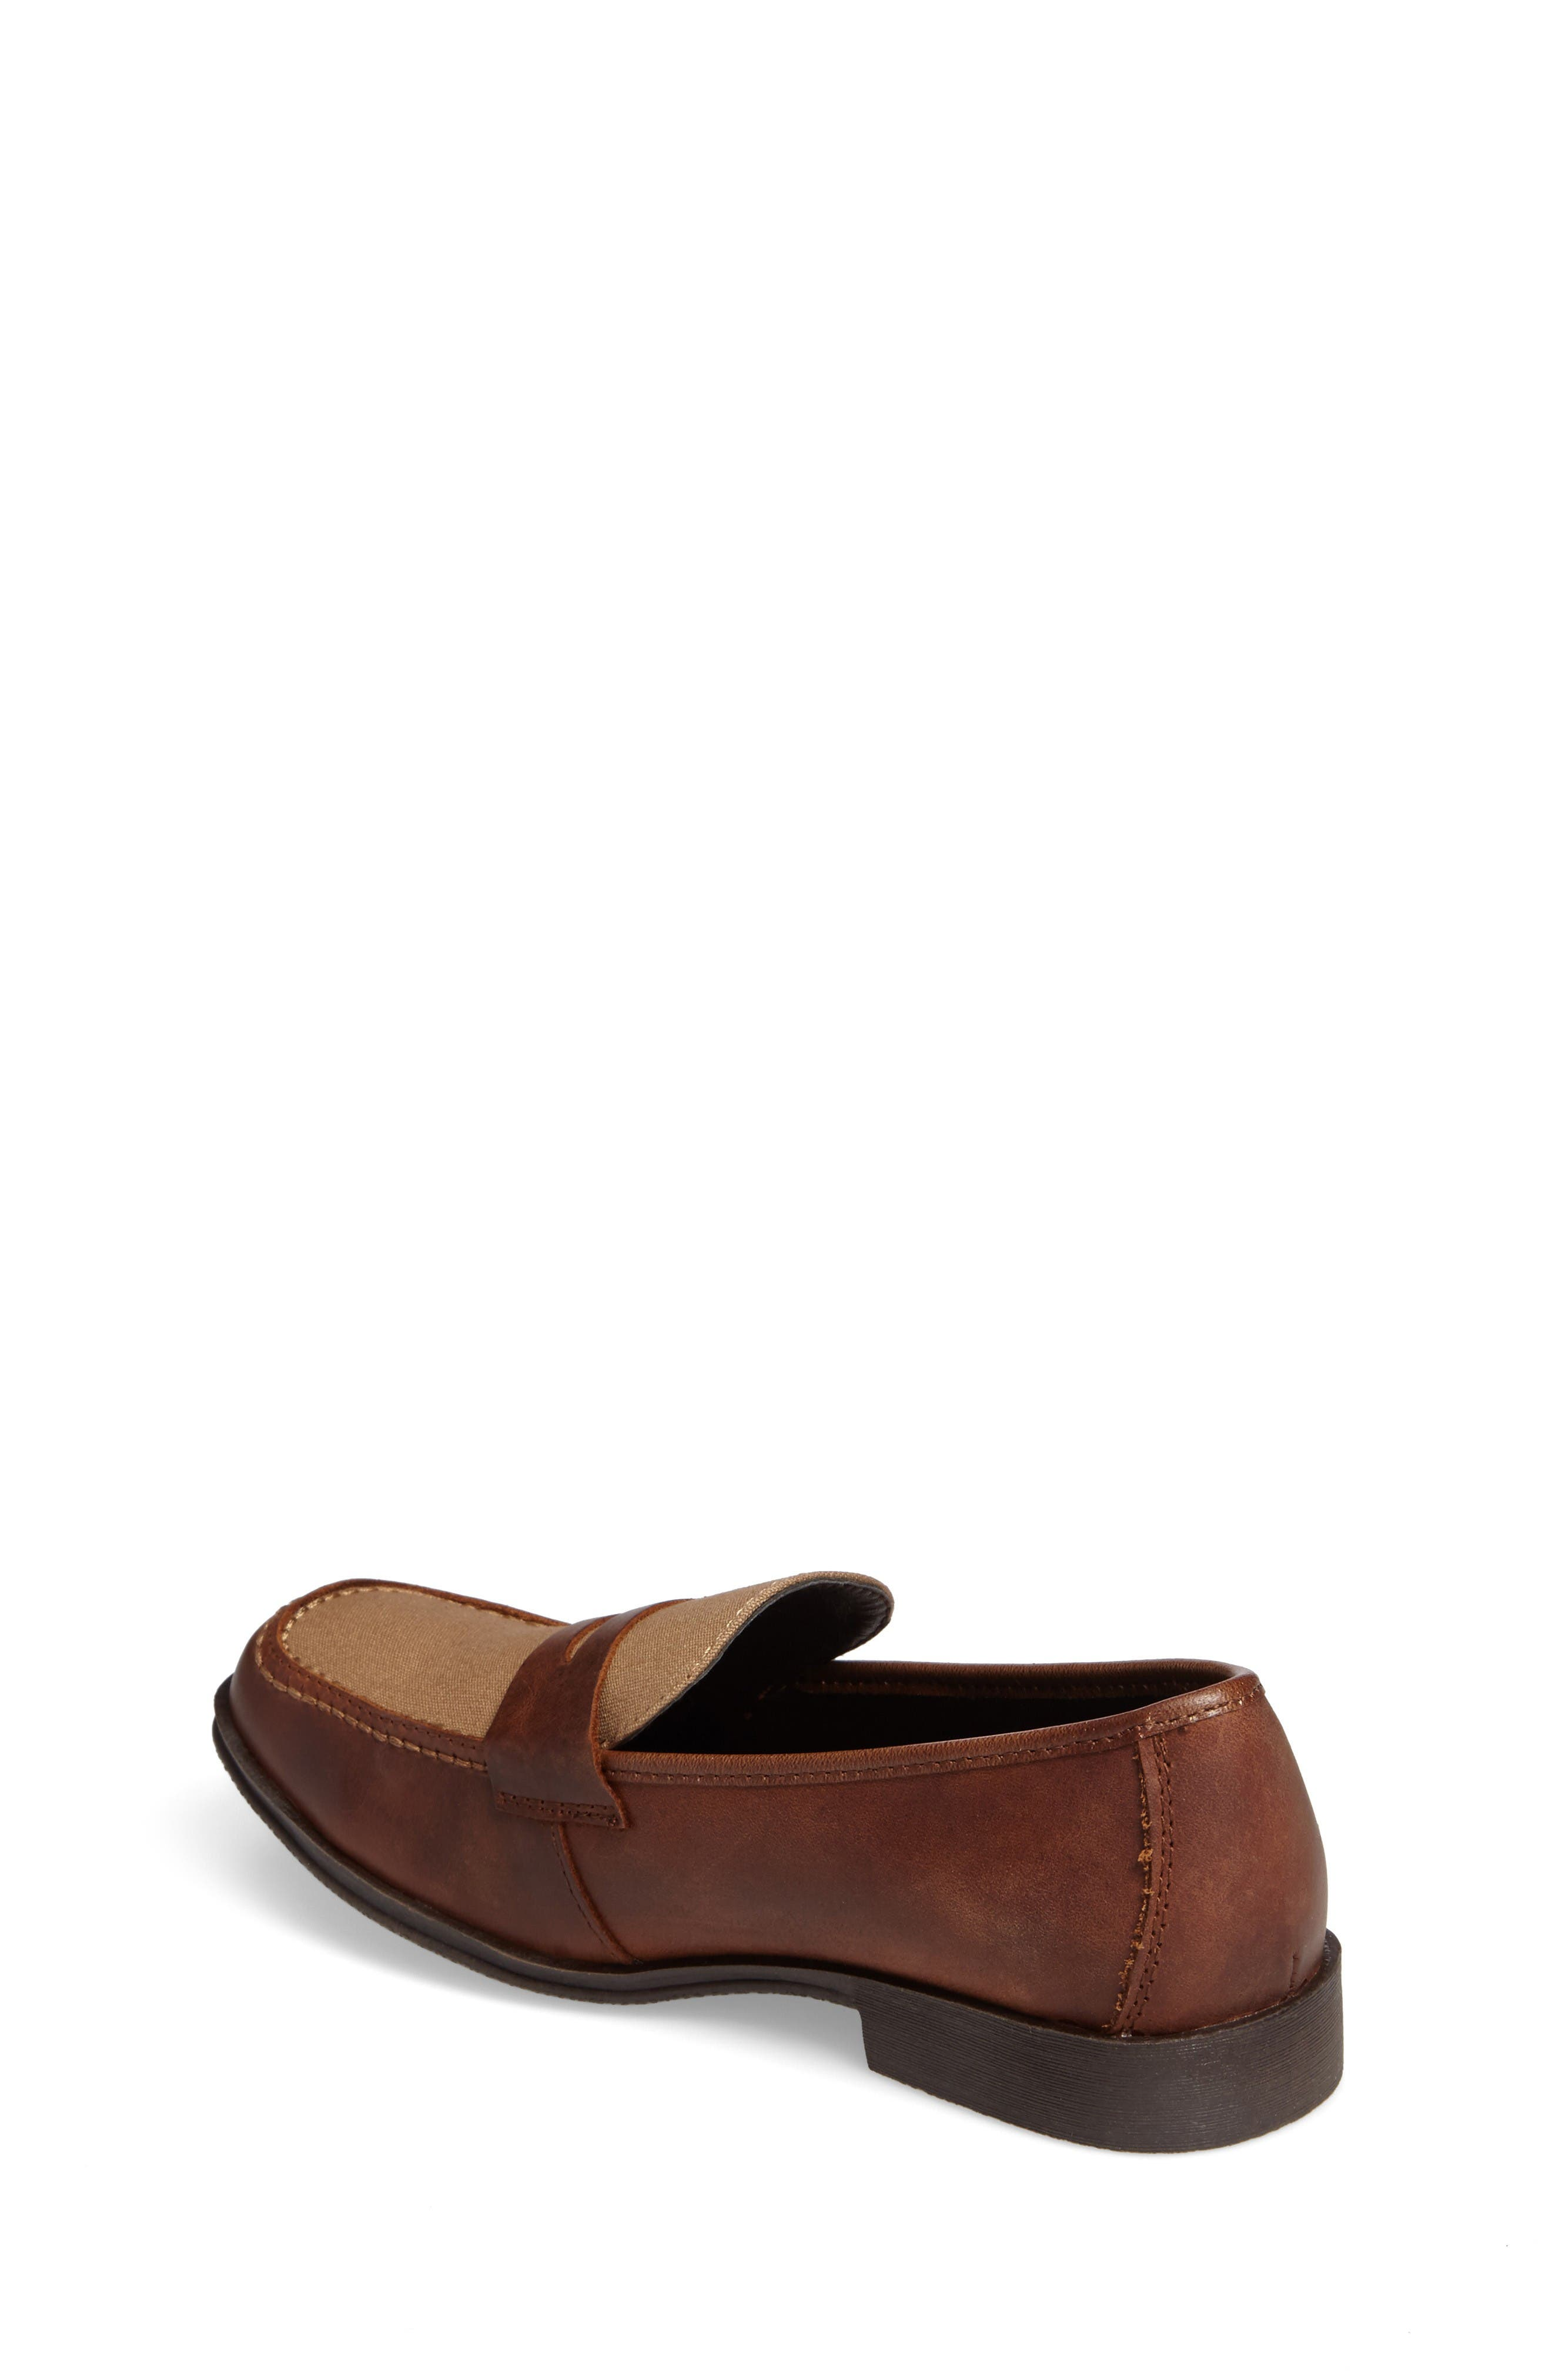 Club Loft Loafer,                             Alternate thumbnail 2, color,                             Tan/ Brown Leather